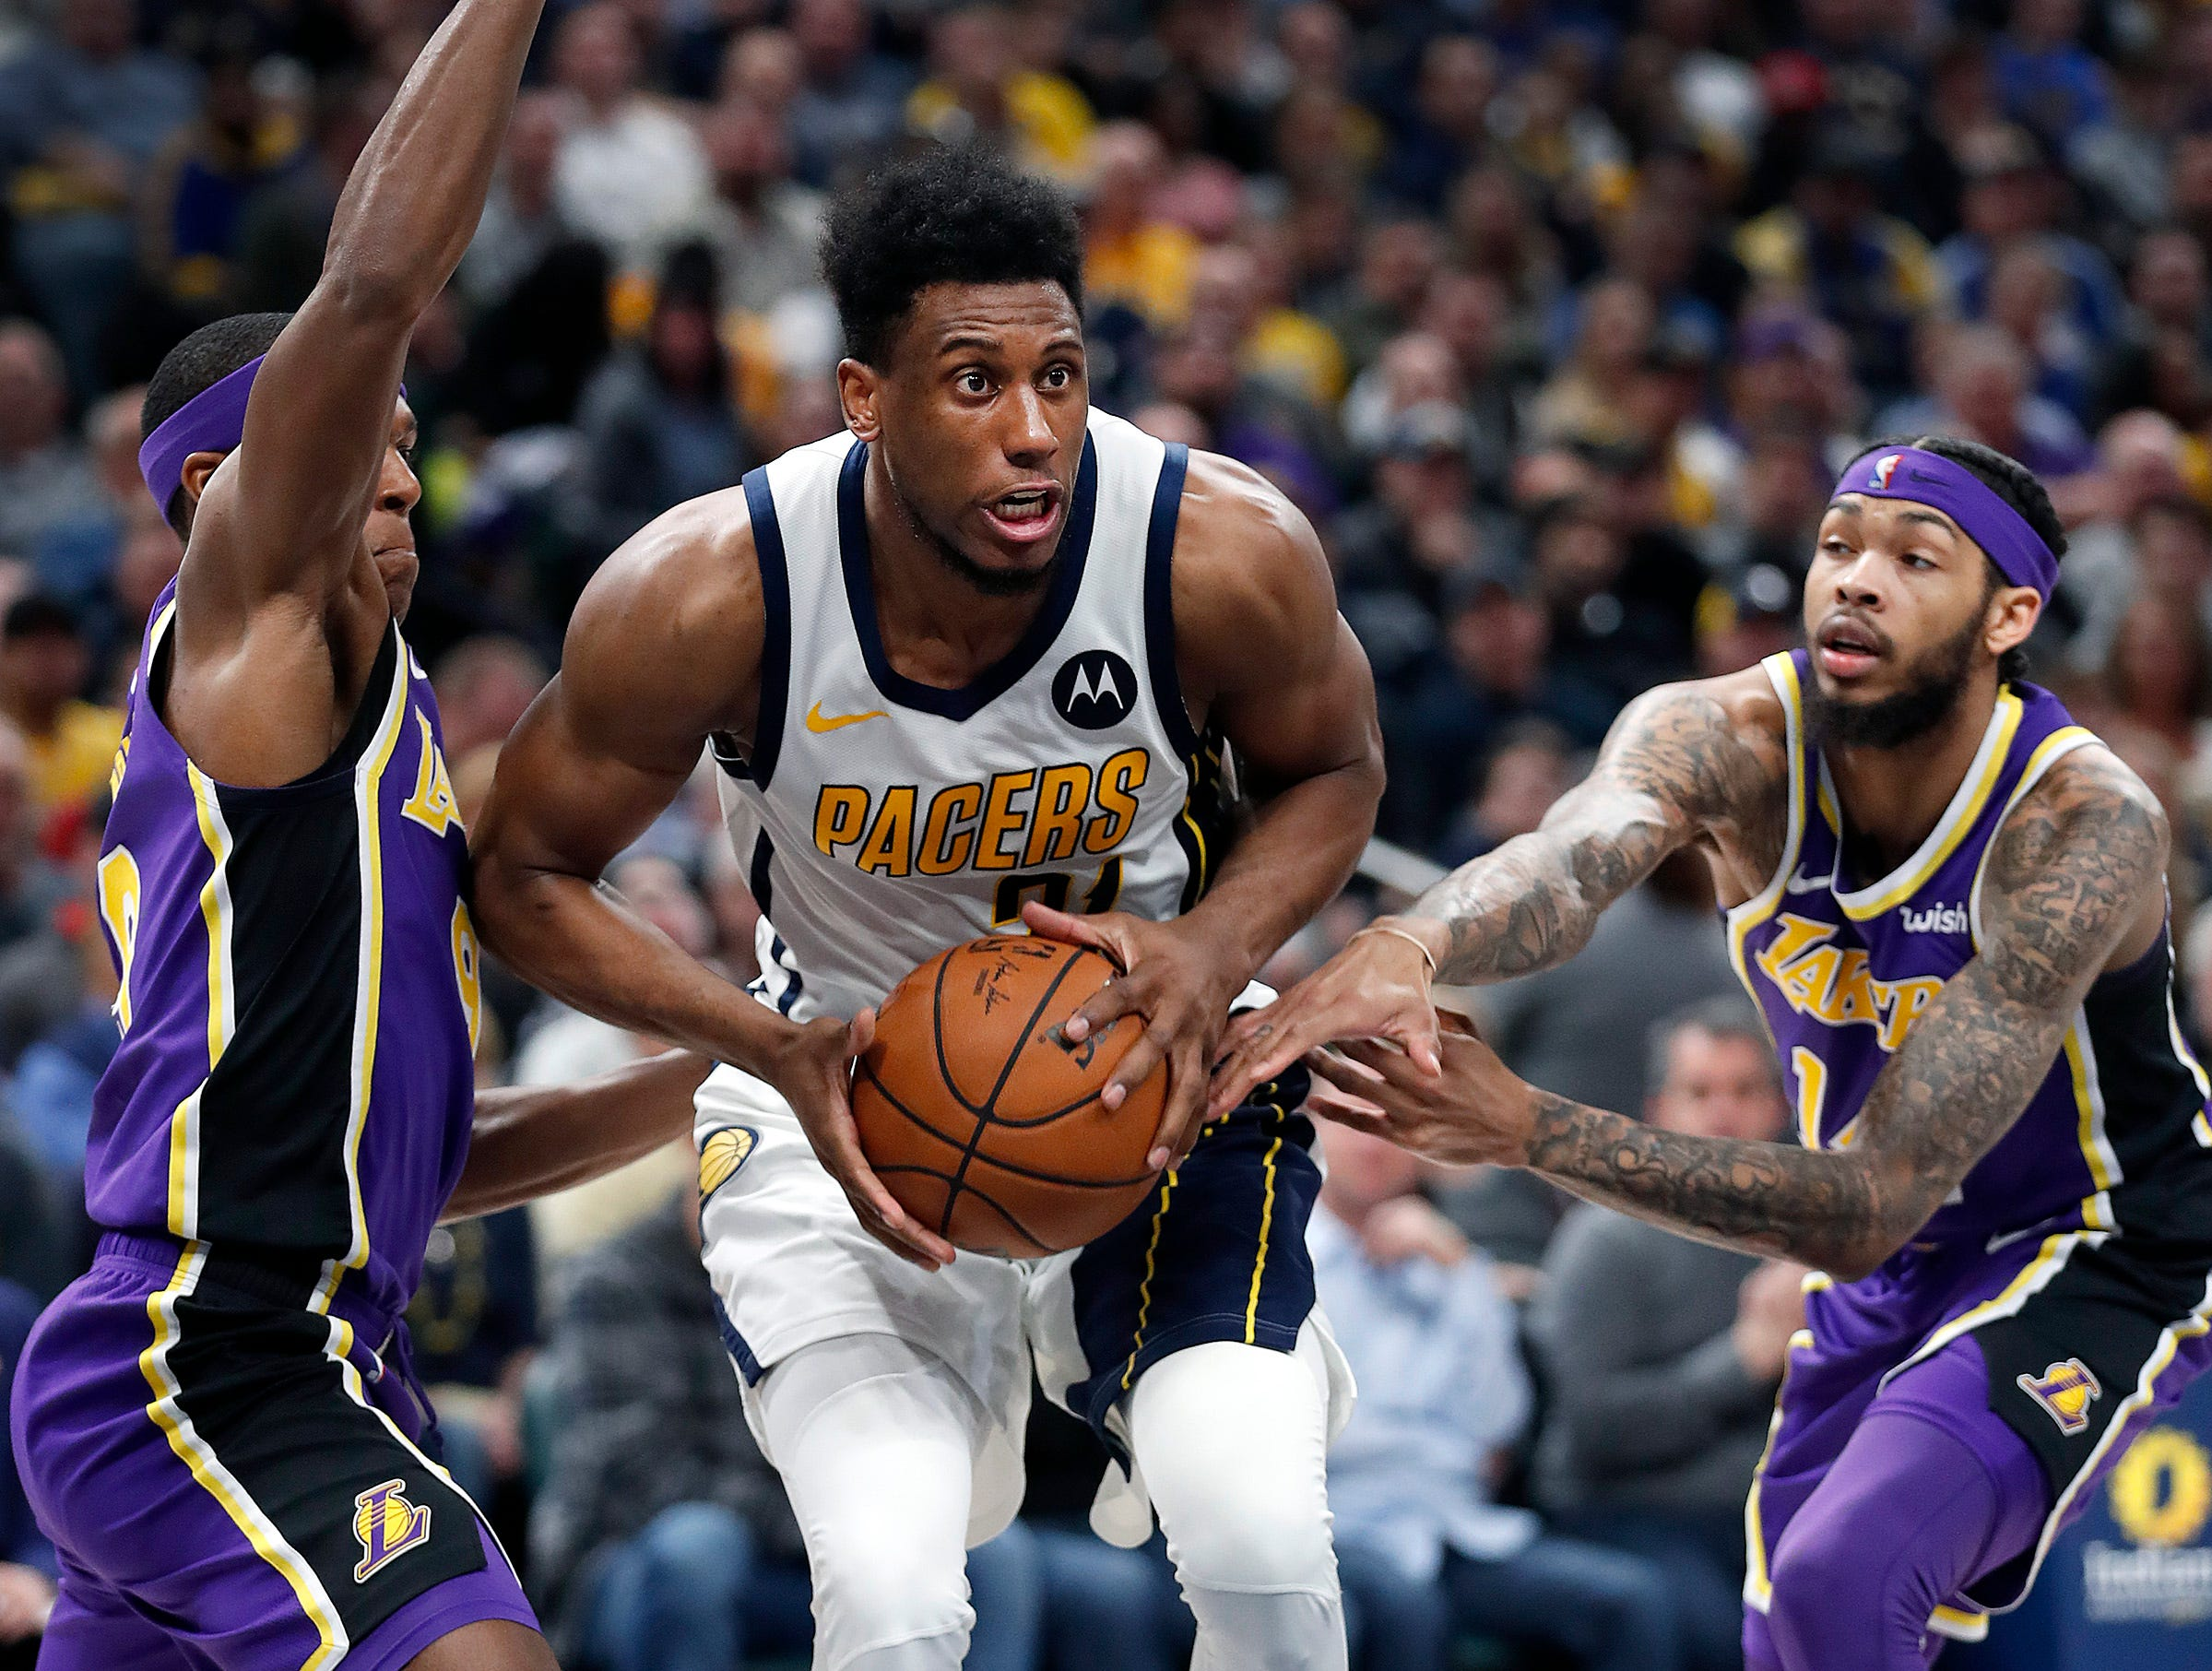 Indiana Pacers forward Thaddeus Young (21) drives between Los Angeles Lakers forward Brandon Ingram (14) and Rajon Rondo (9) in the first half of their game at Bankers Life Fieldhouse on Tuesday, Feb. 5, 2019.